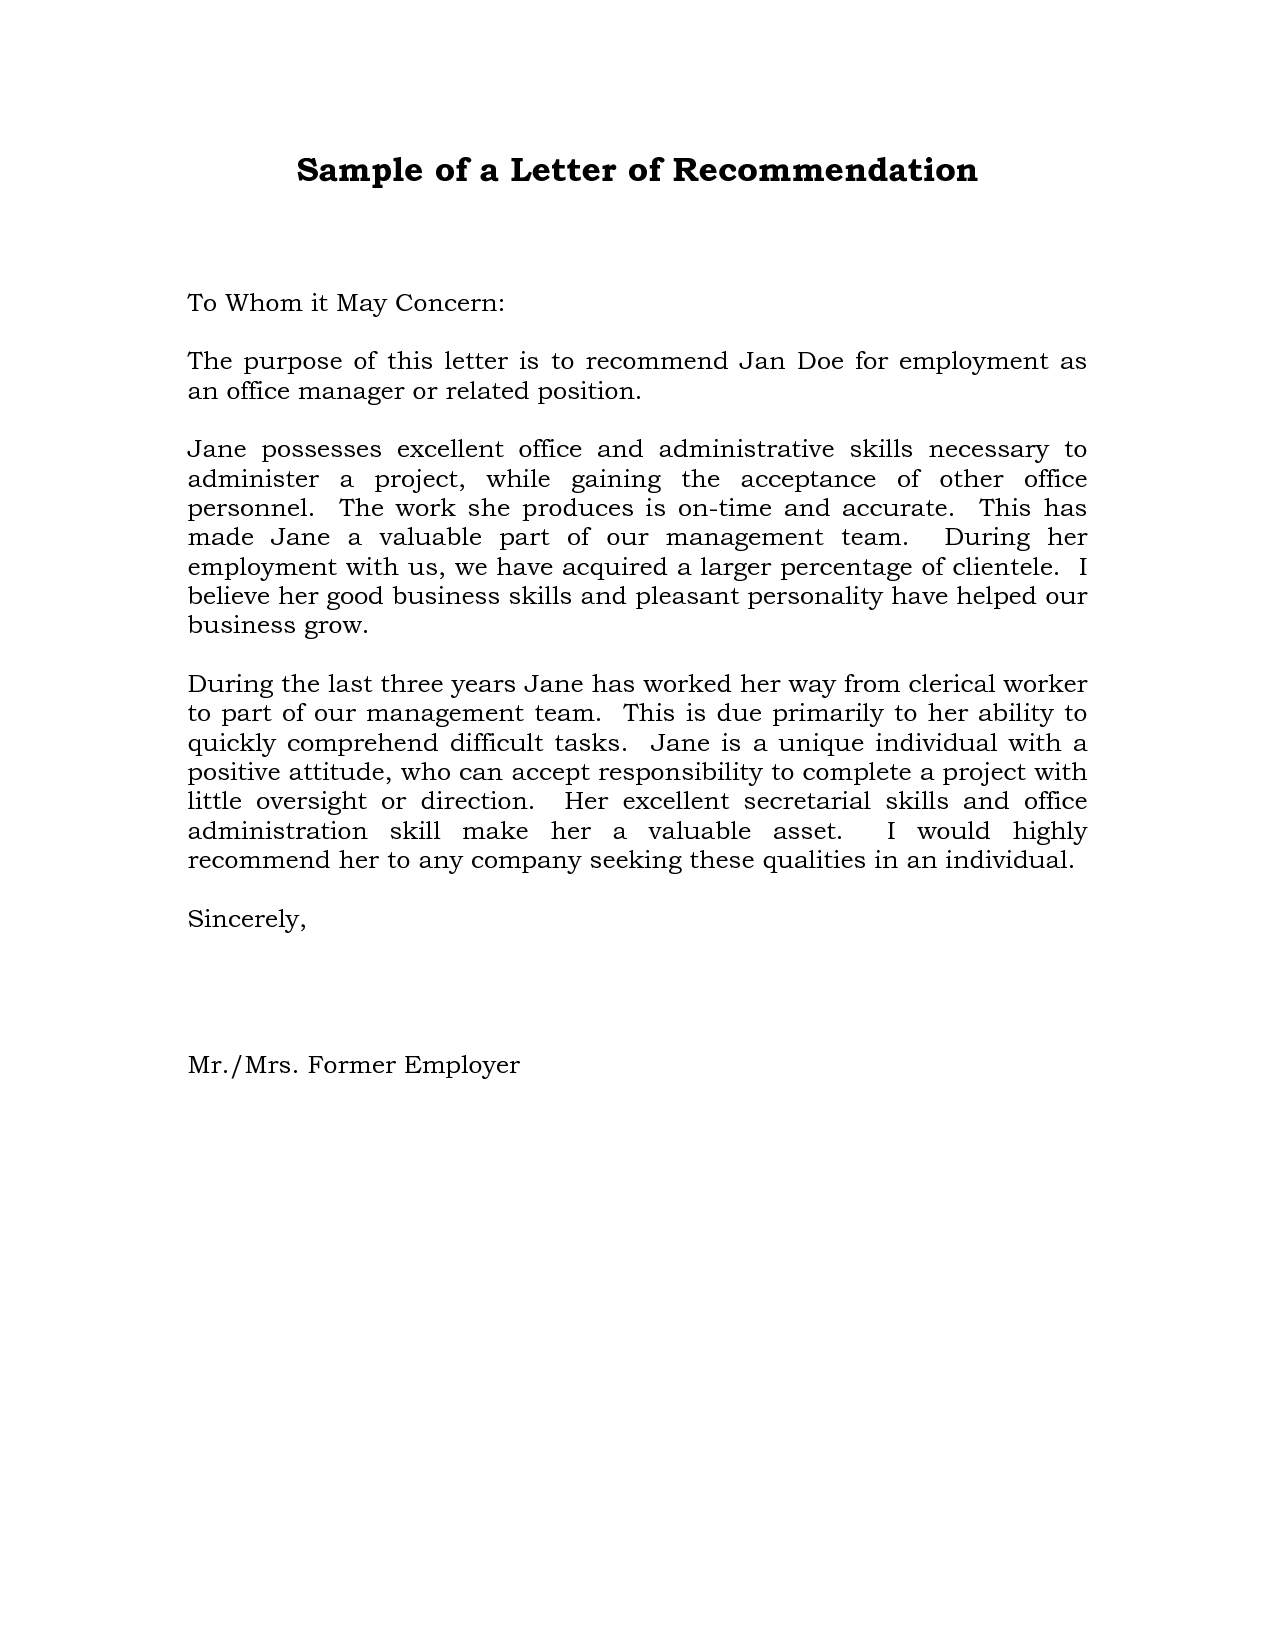 Letter of recommendation for employment template robertottni letter of recommendation for employment template thecheapjerseys Choice Image